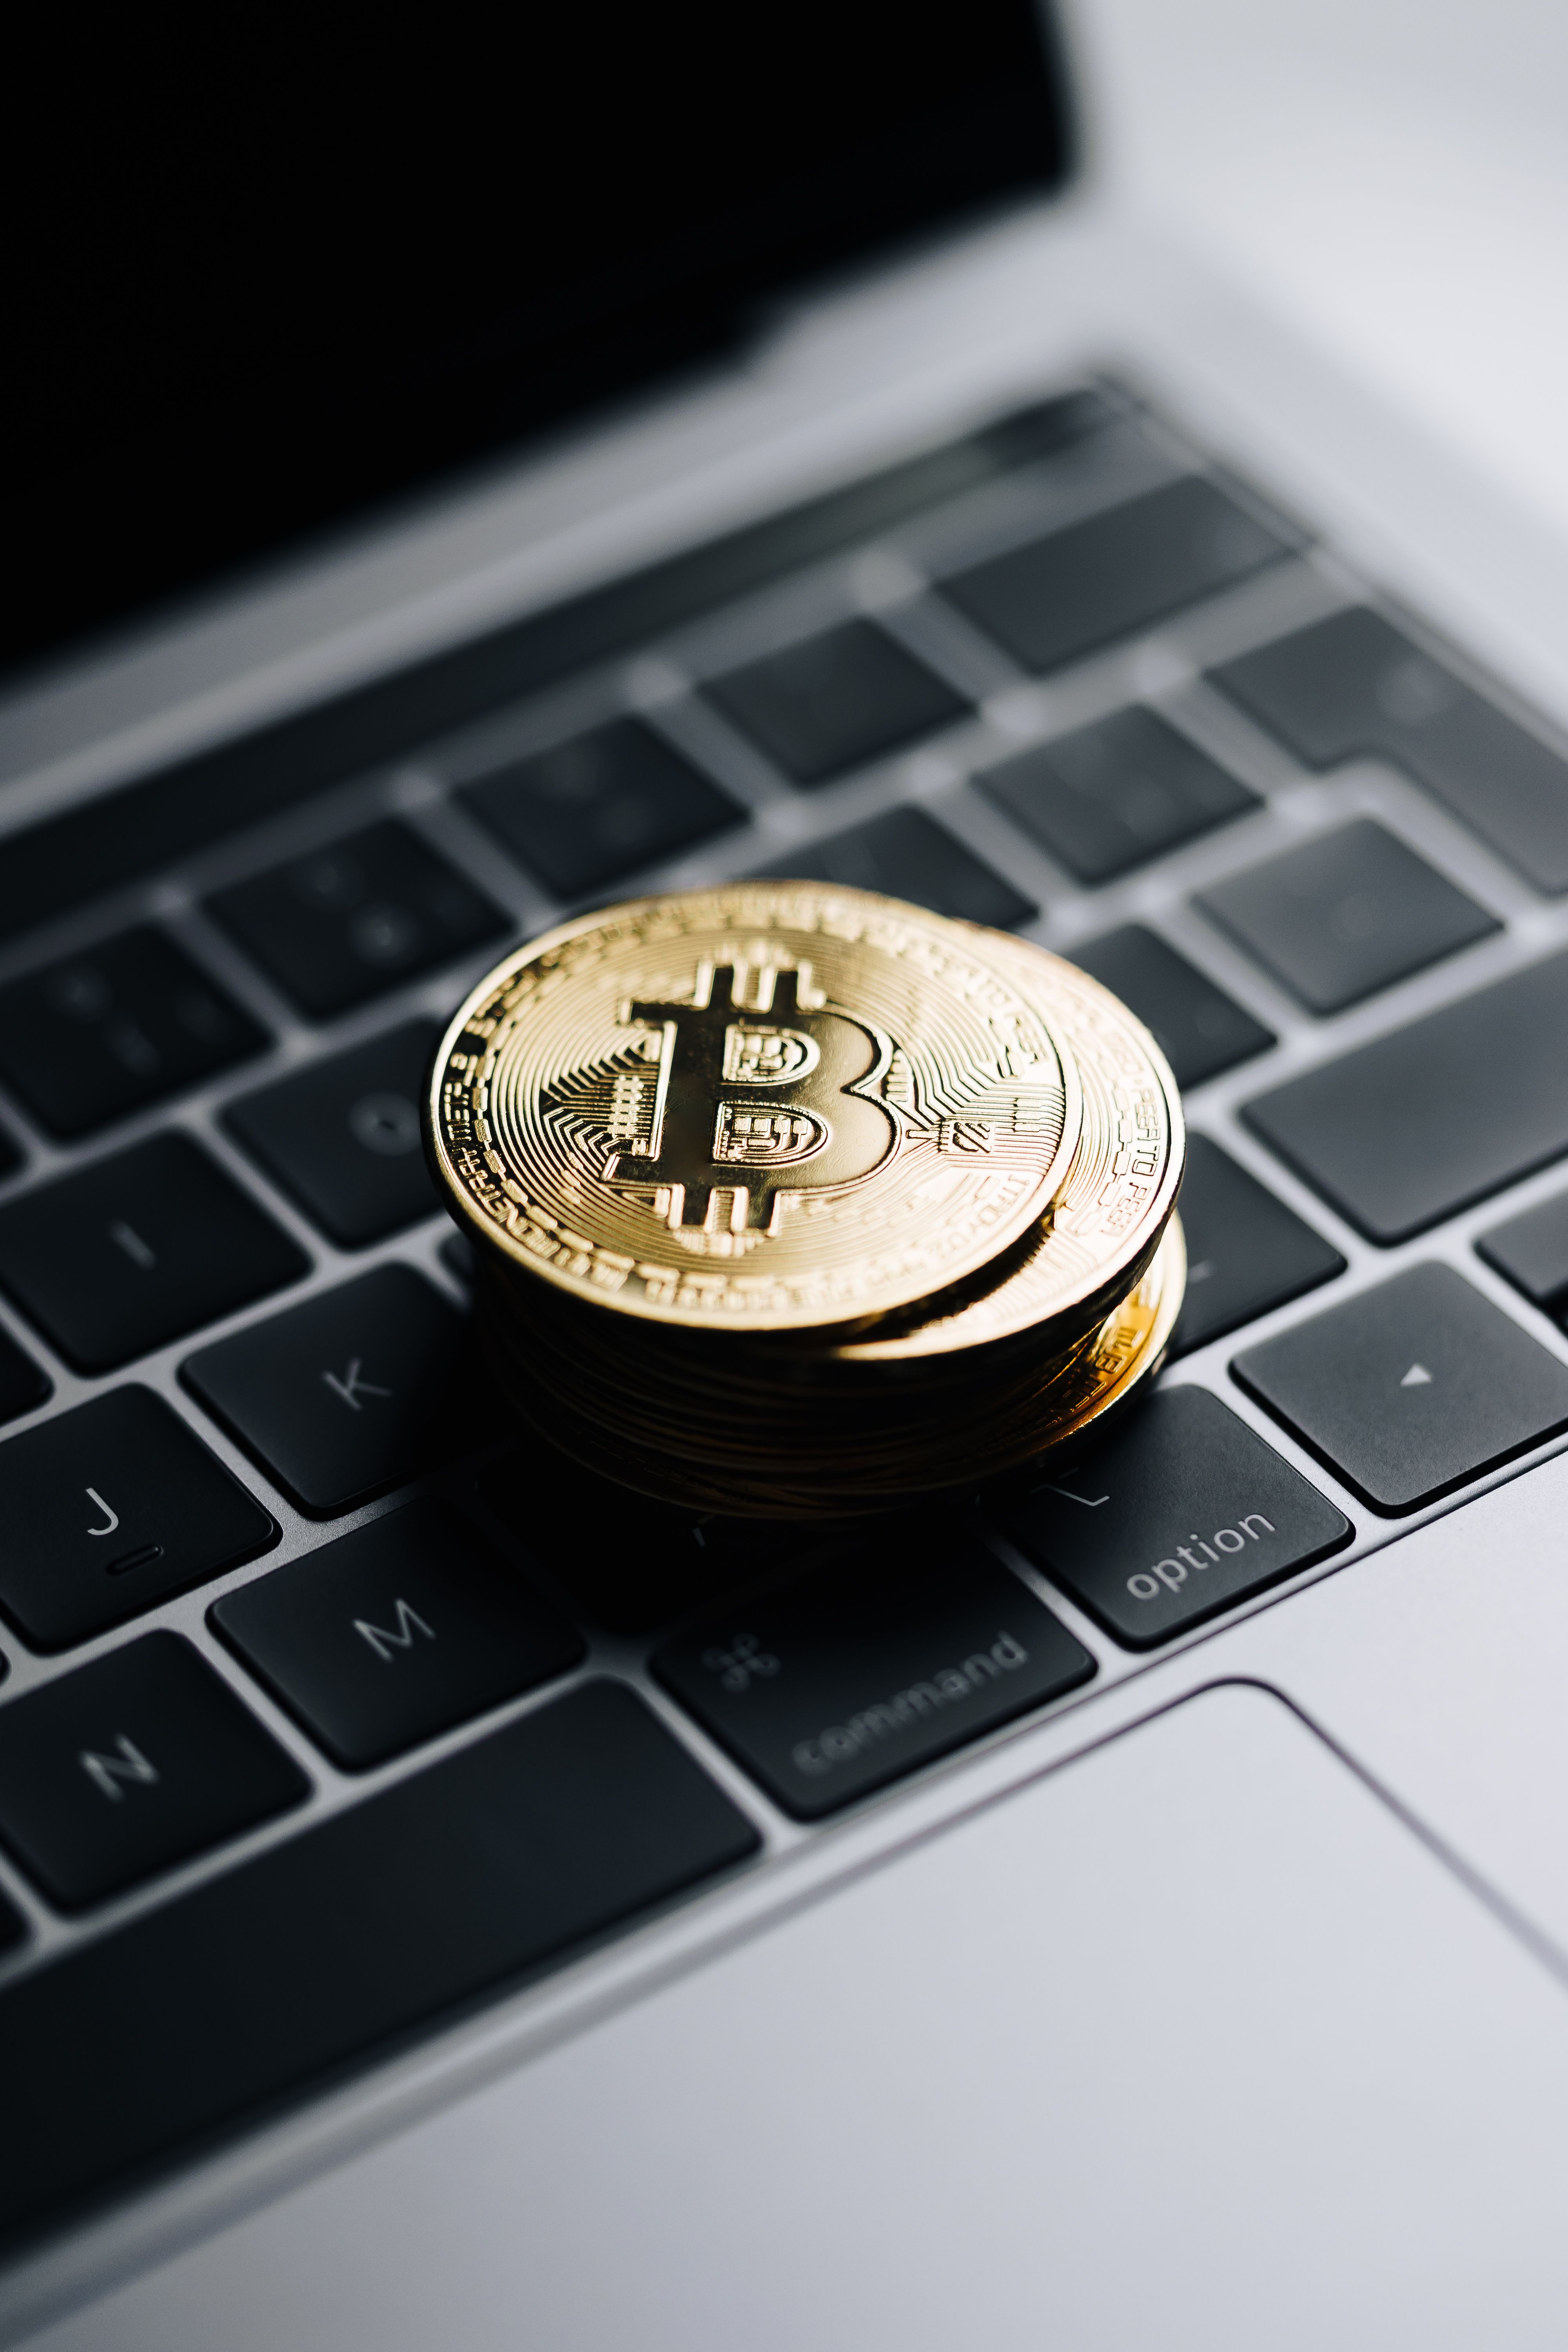 Free Image Bitcoin Coins Vertical Wallpaper Download